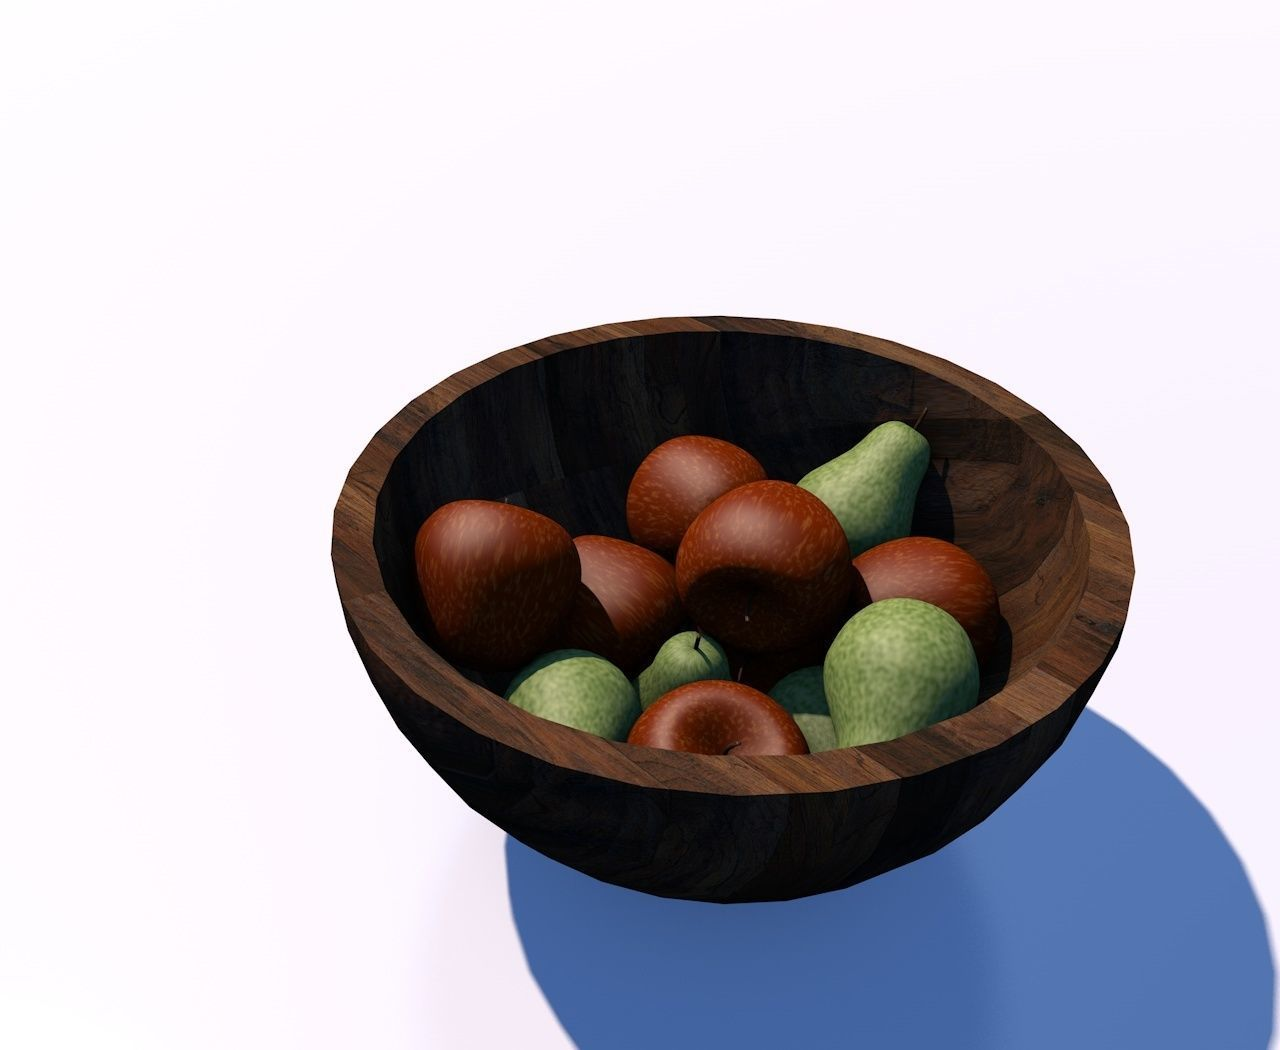 Bowl For Fruit Wooden Fruit Bowl With Green Pear And Red Apple 3d Model